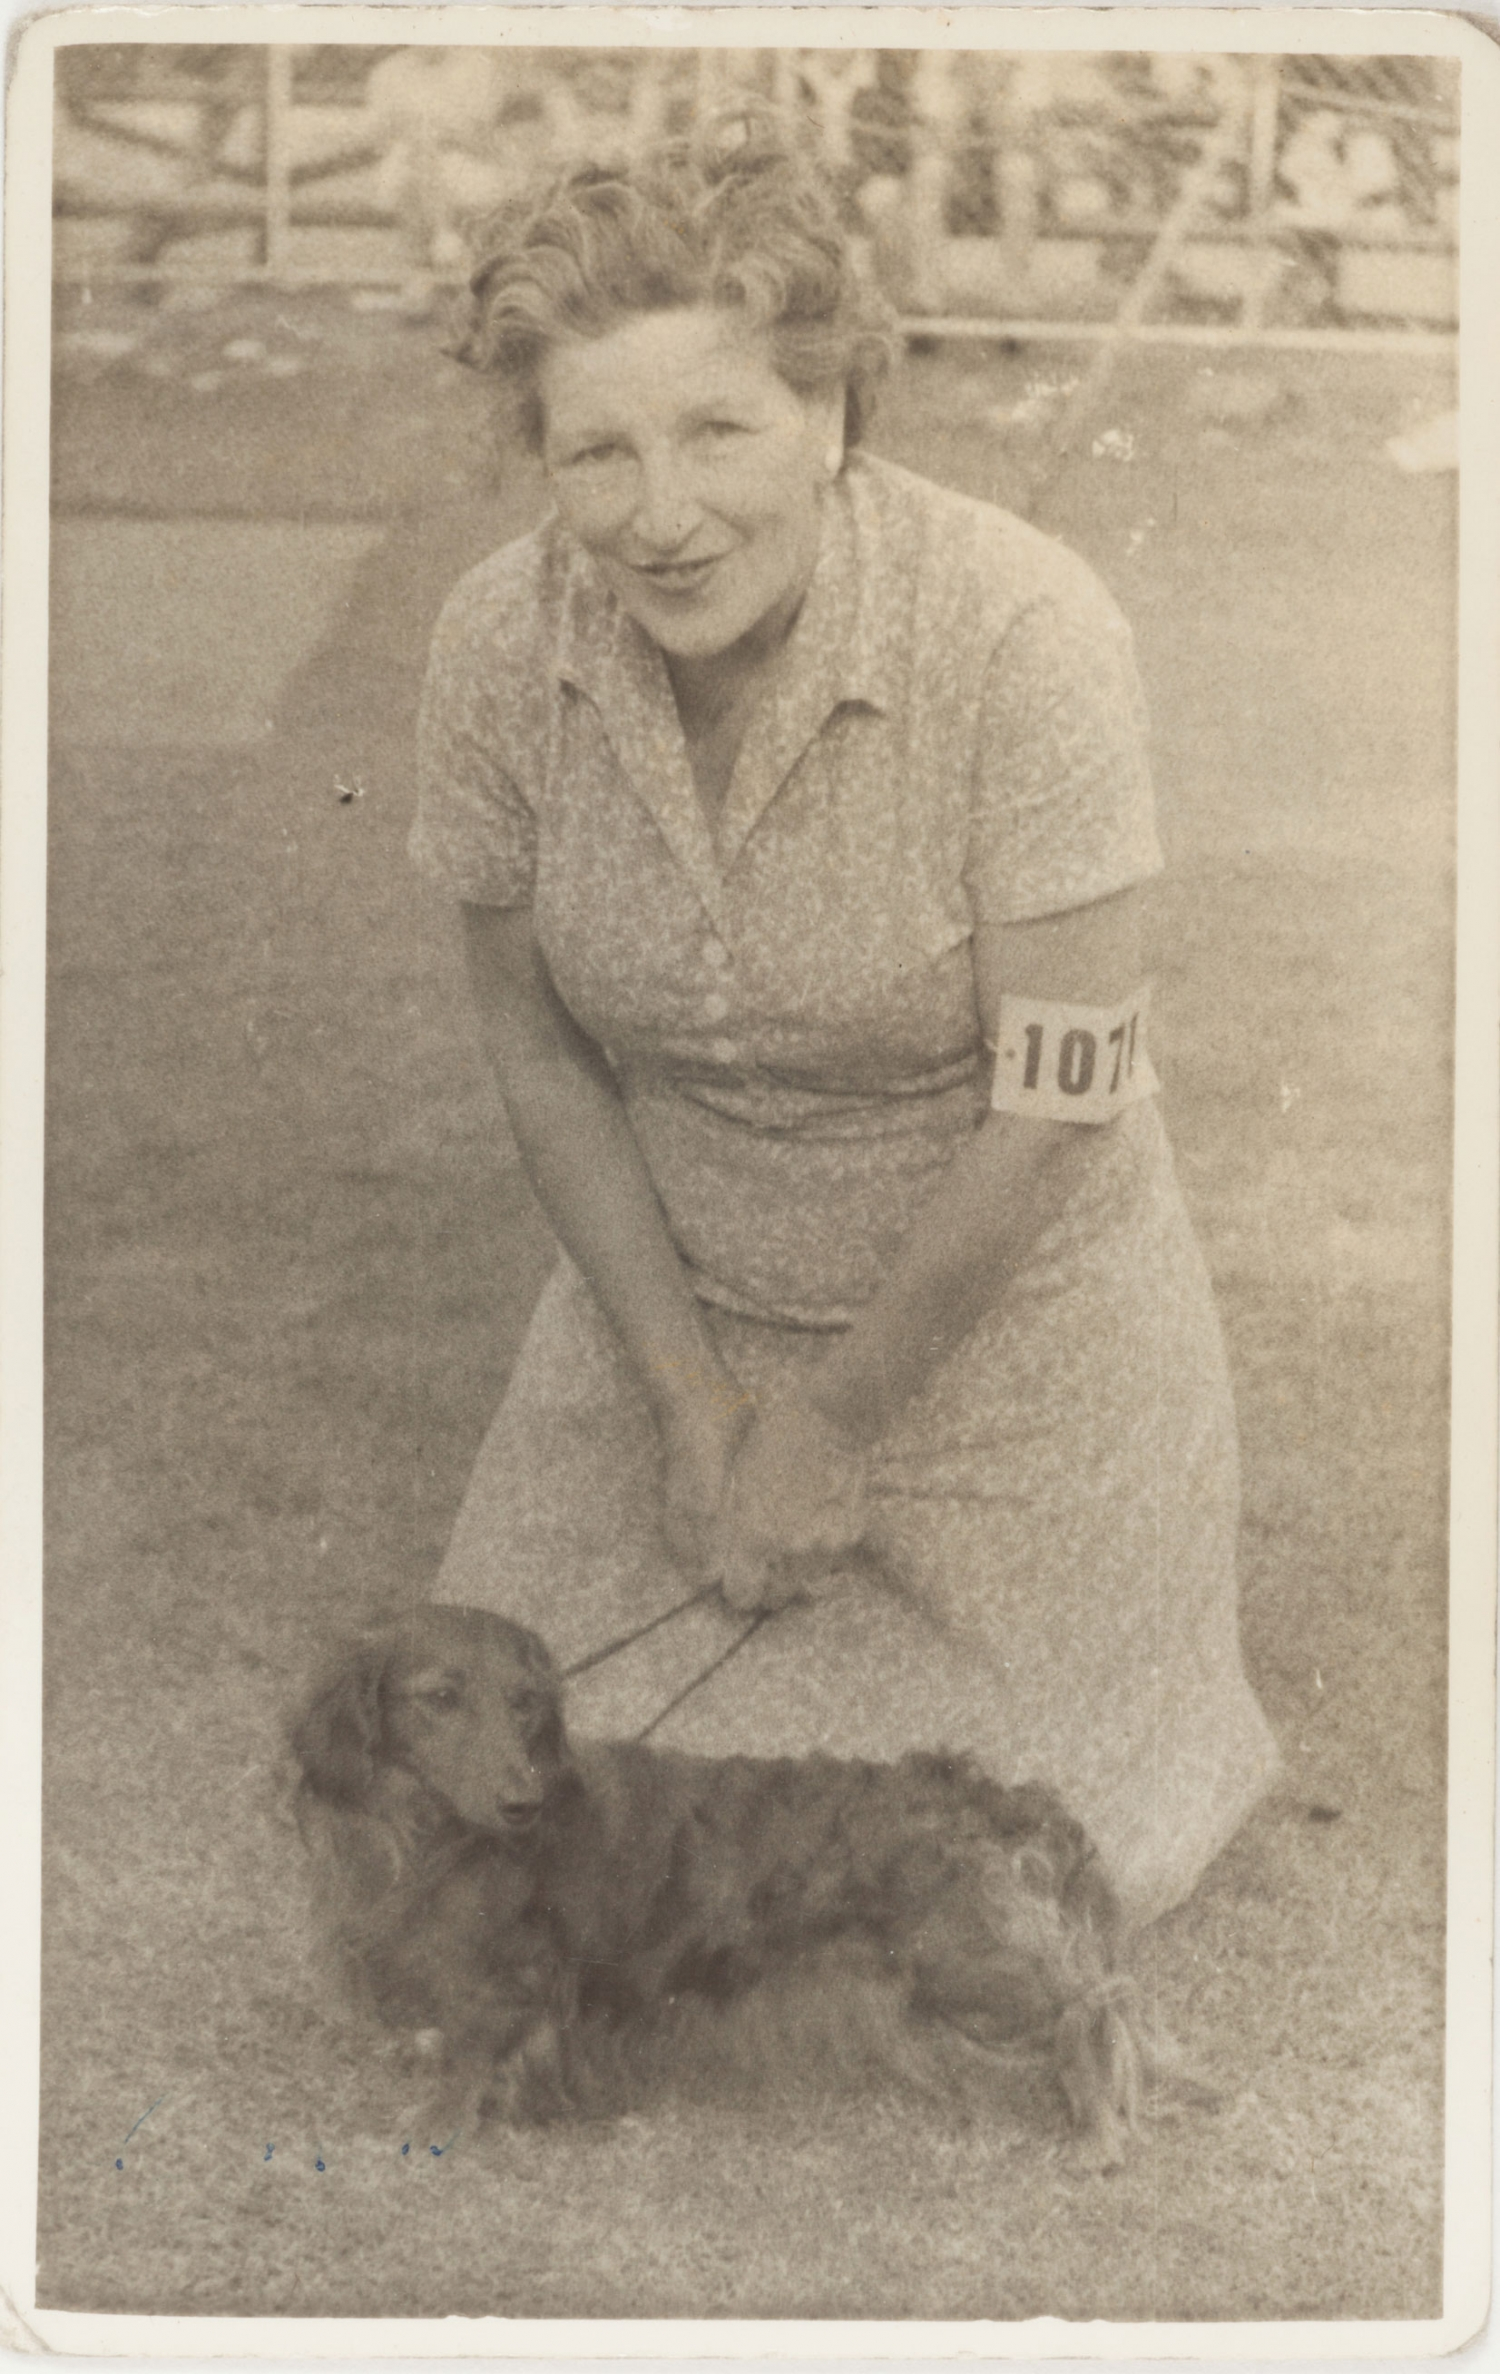 Woman kneeling on grass with daschund on lead in front of her.